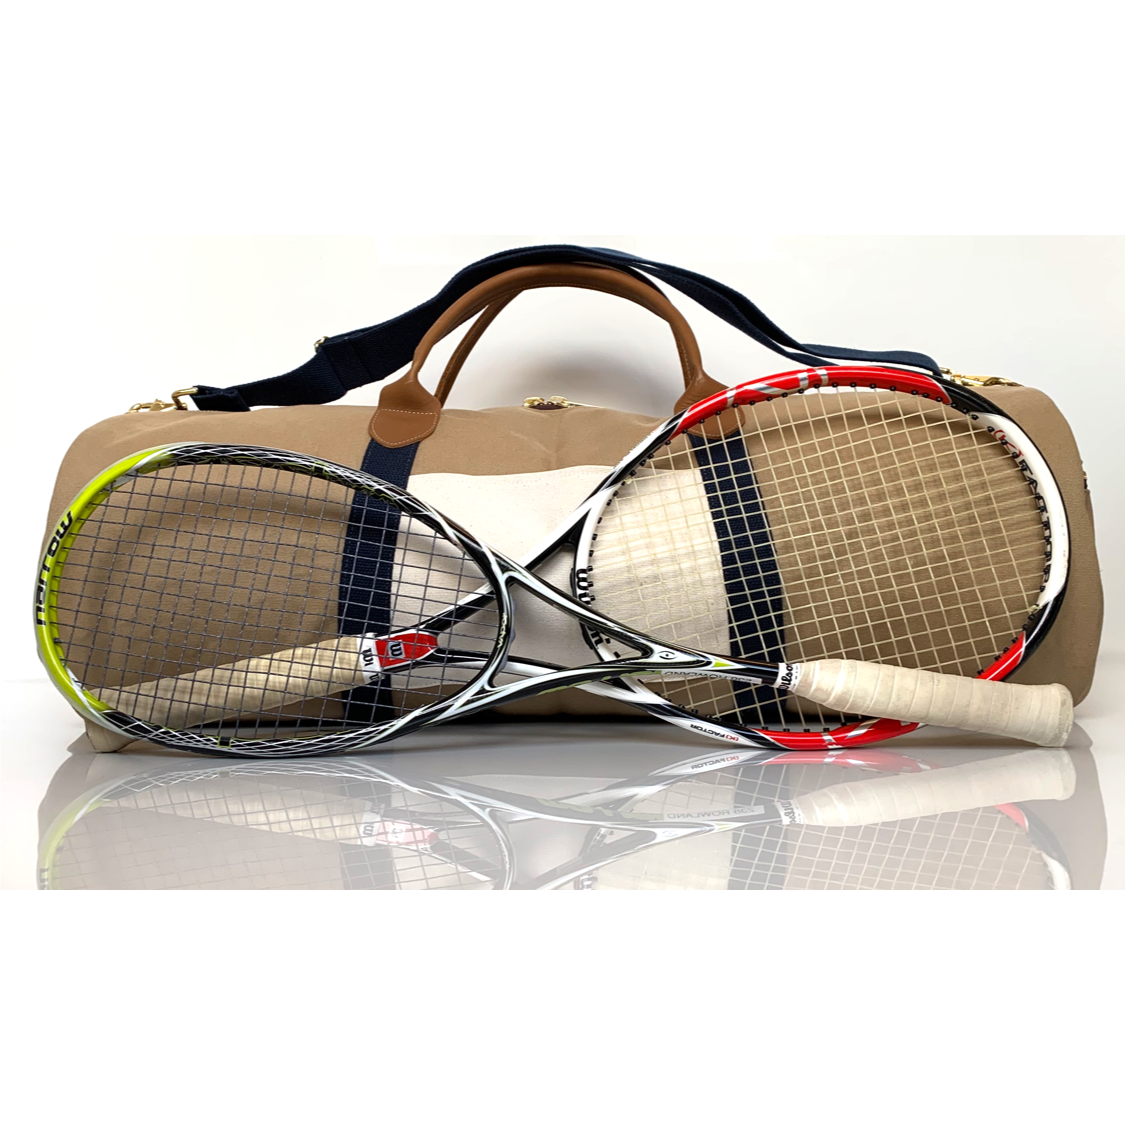 canvas Squash and tennis duffle bag with leather handles